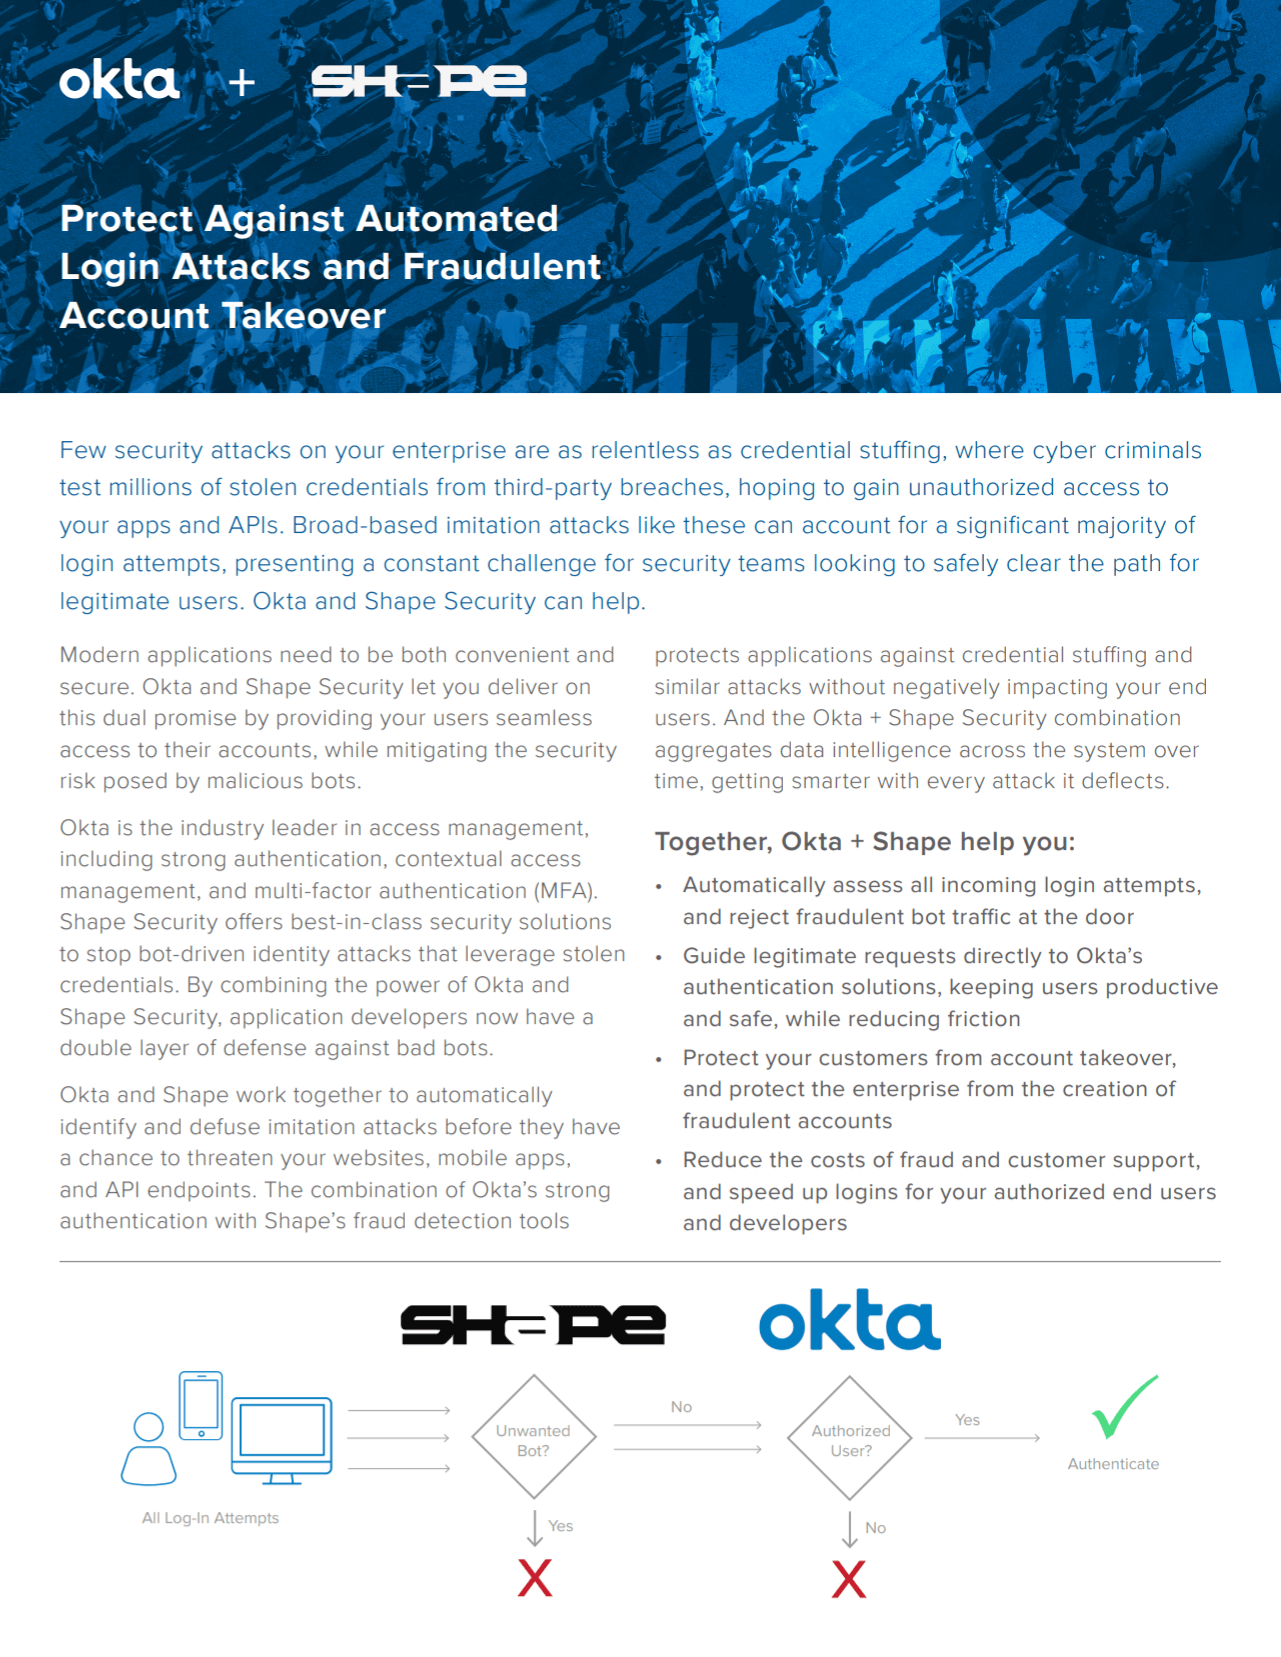 Okta and Shape Security help protect against automated login attacks.